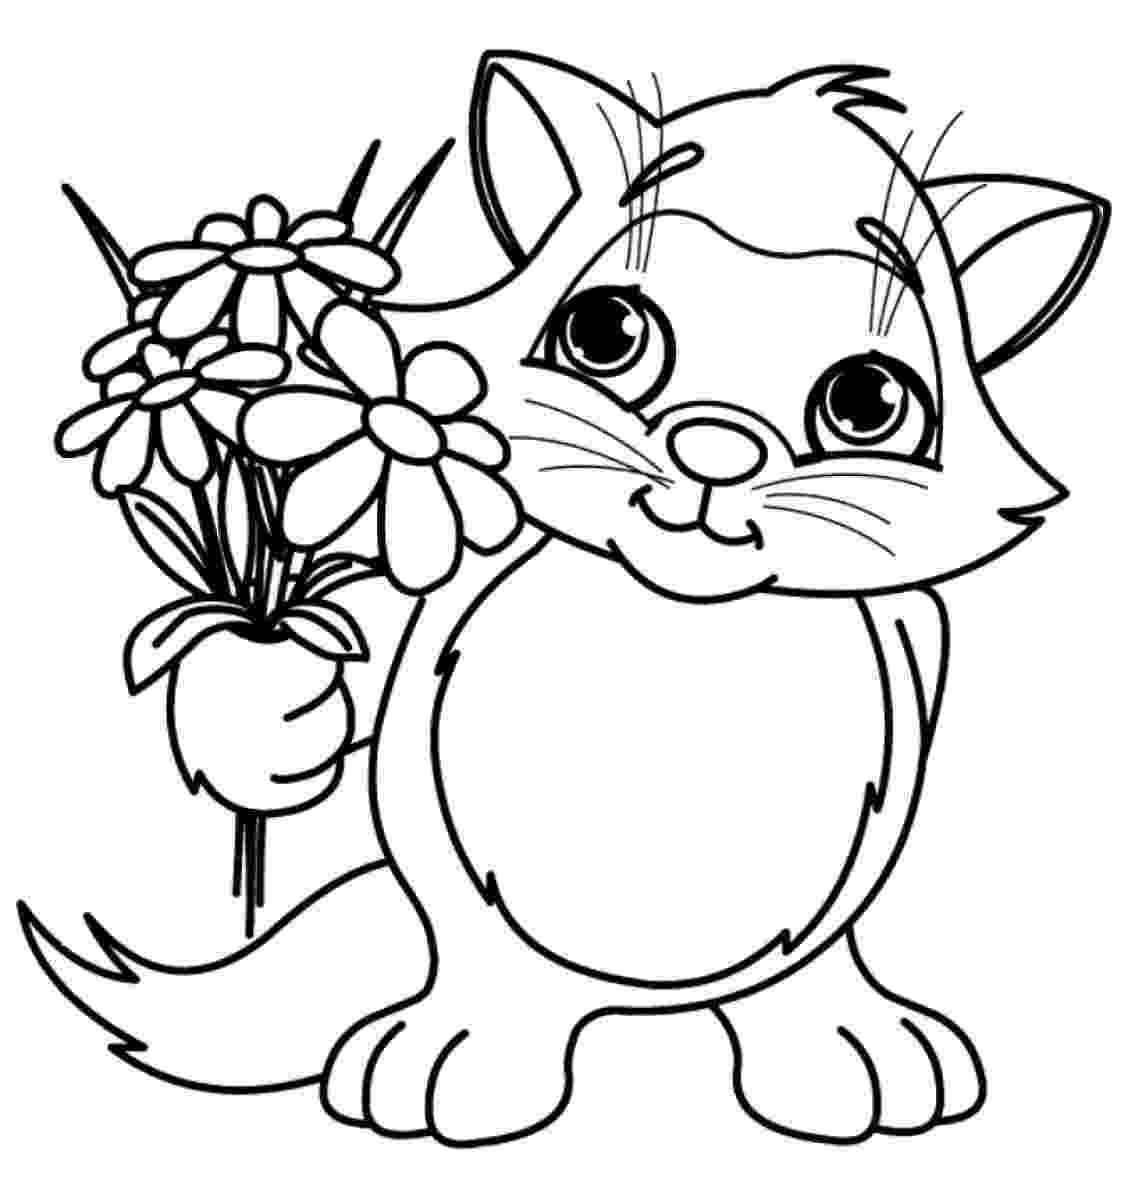 flower coloring pages for girls free girls flowers coloring pages download free clip art pages girls flower coloring for